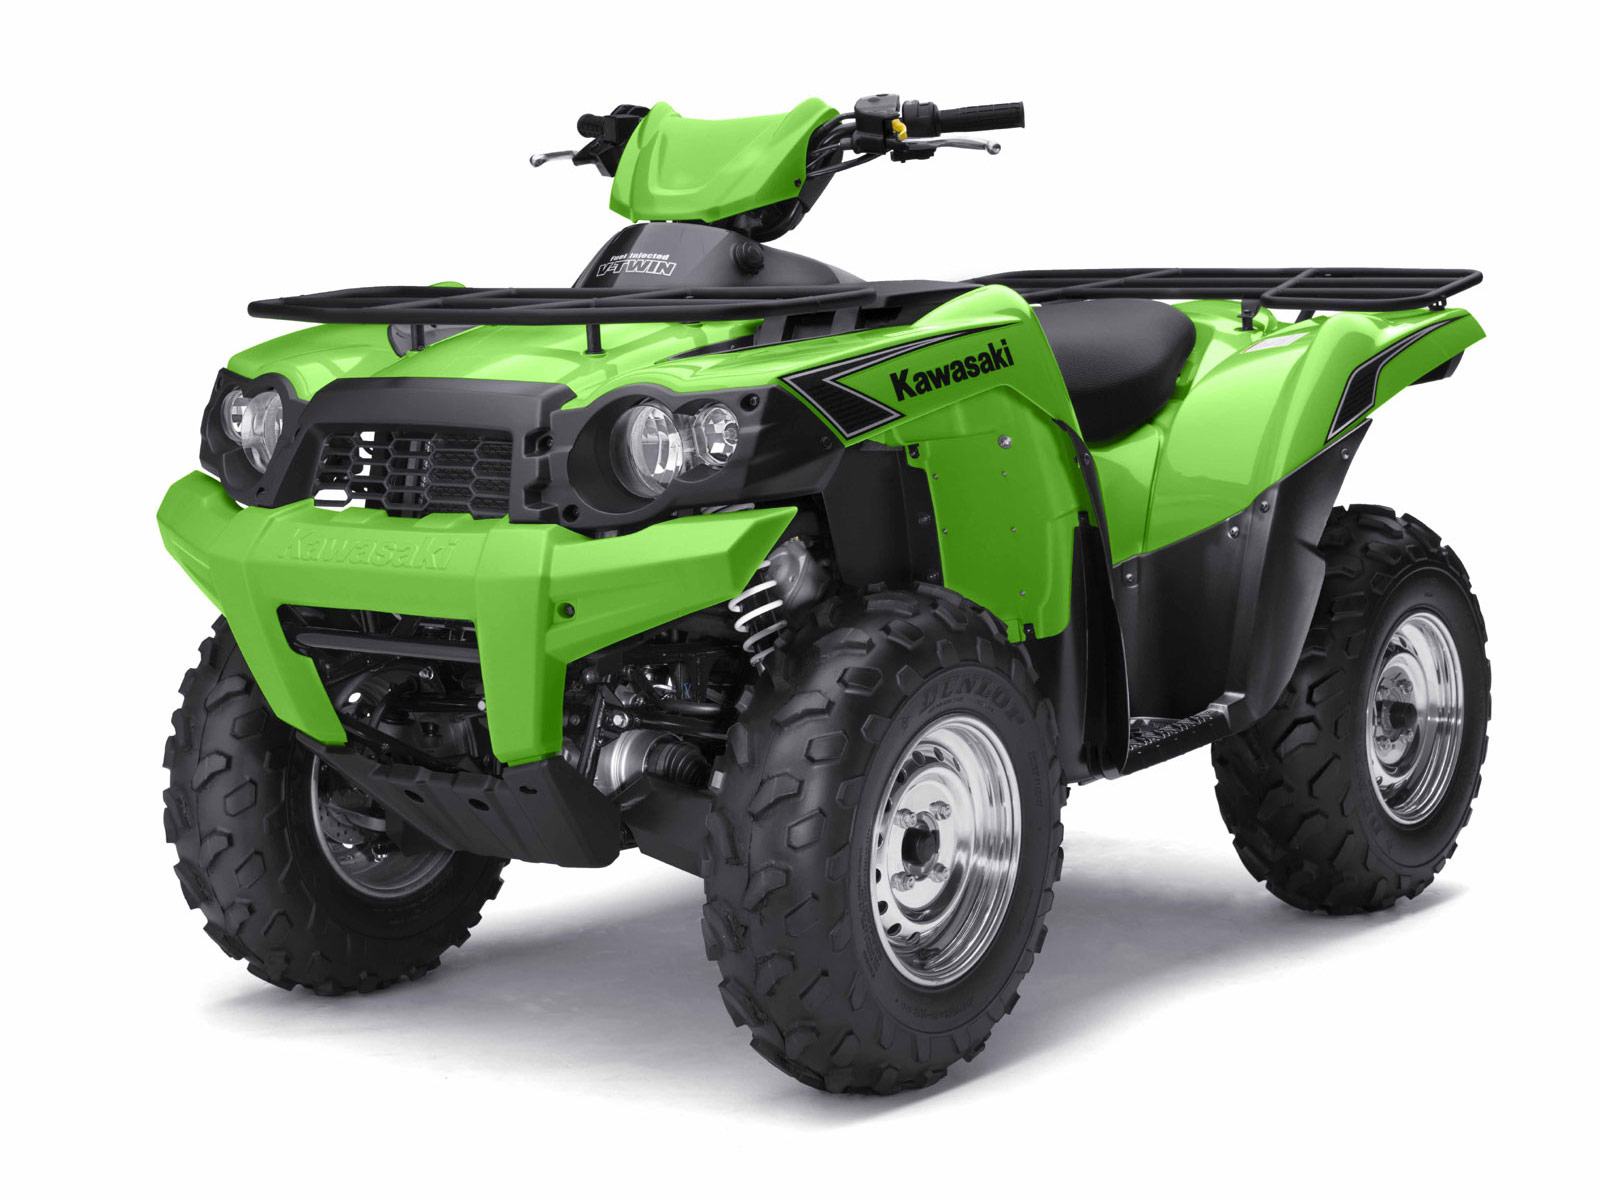 Kawasaki Brute Force Specifications